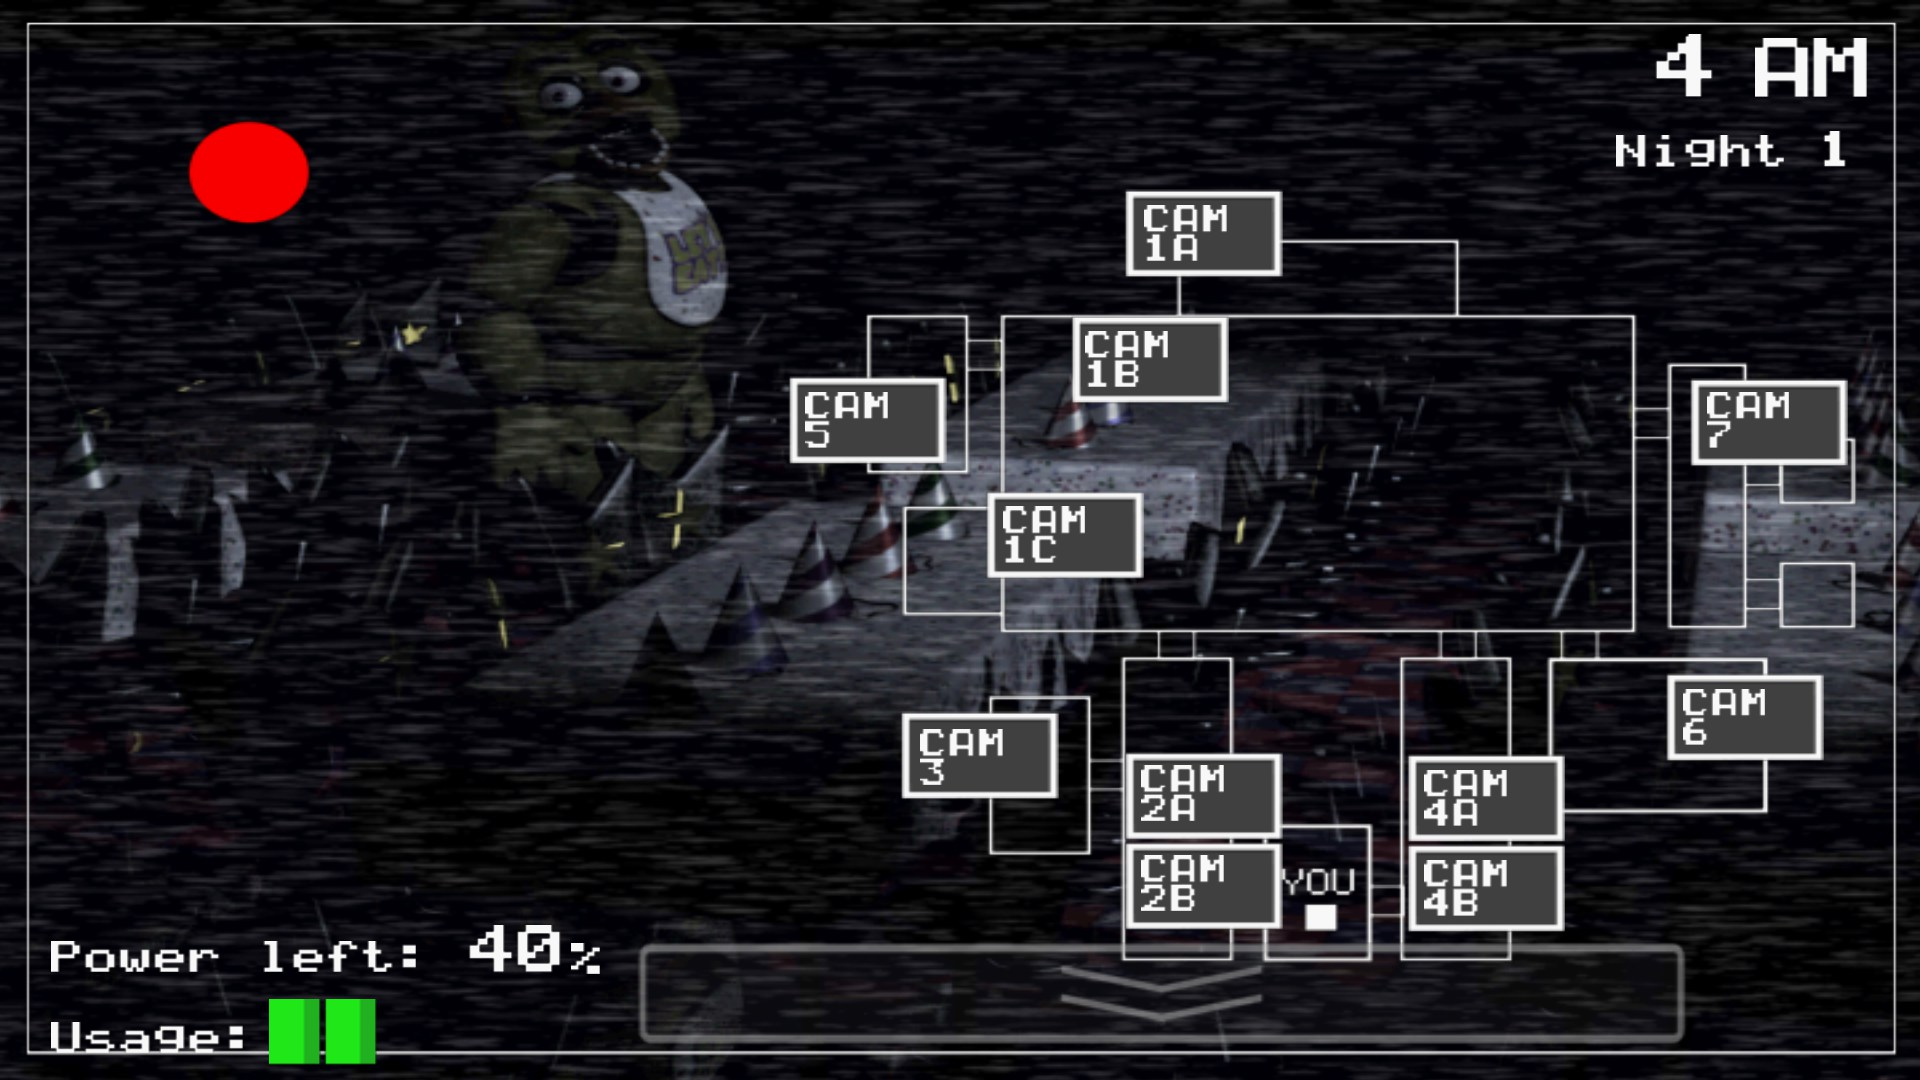 Five nights at freddys browser game unblocked best apps for android